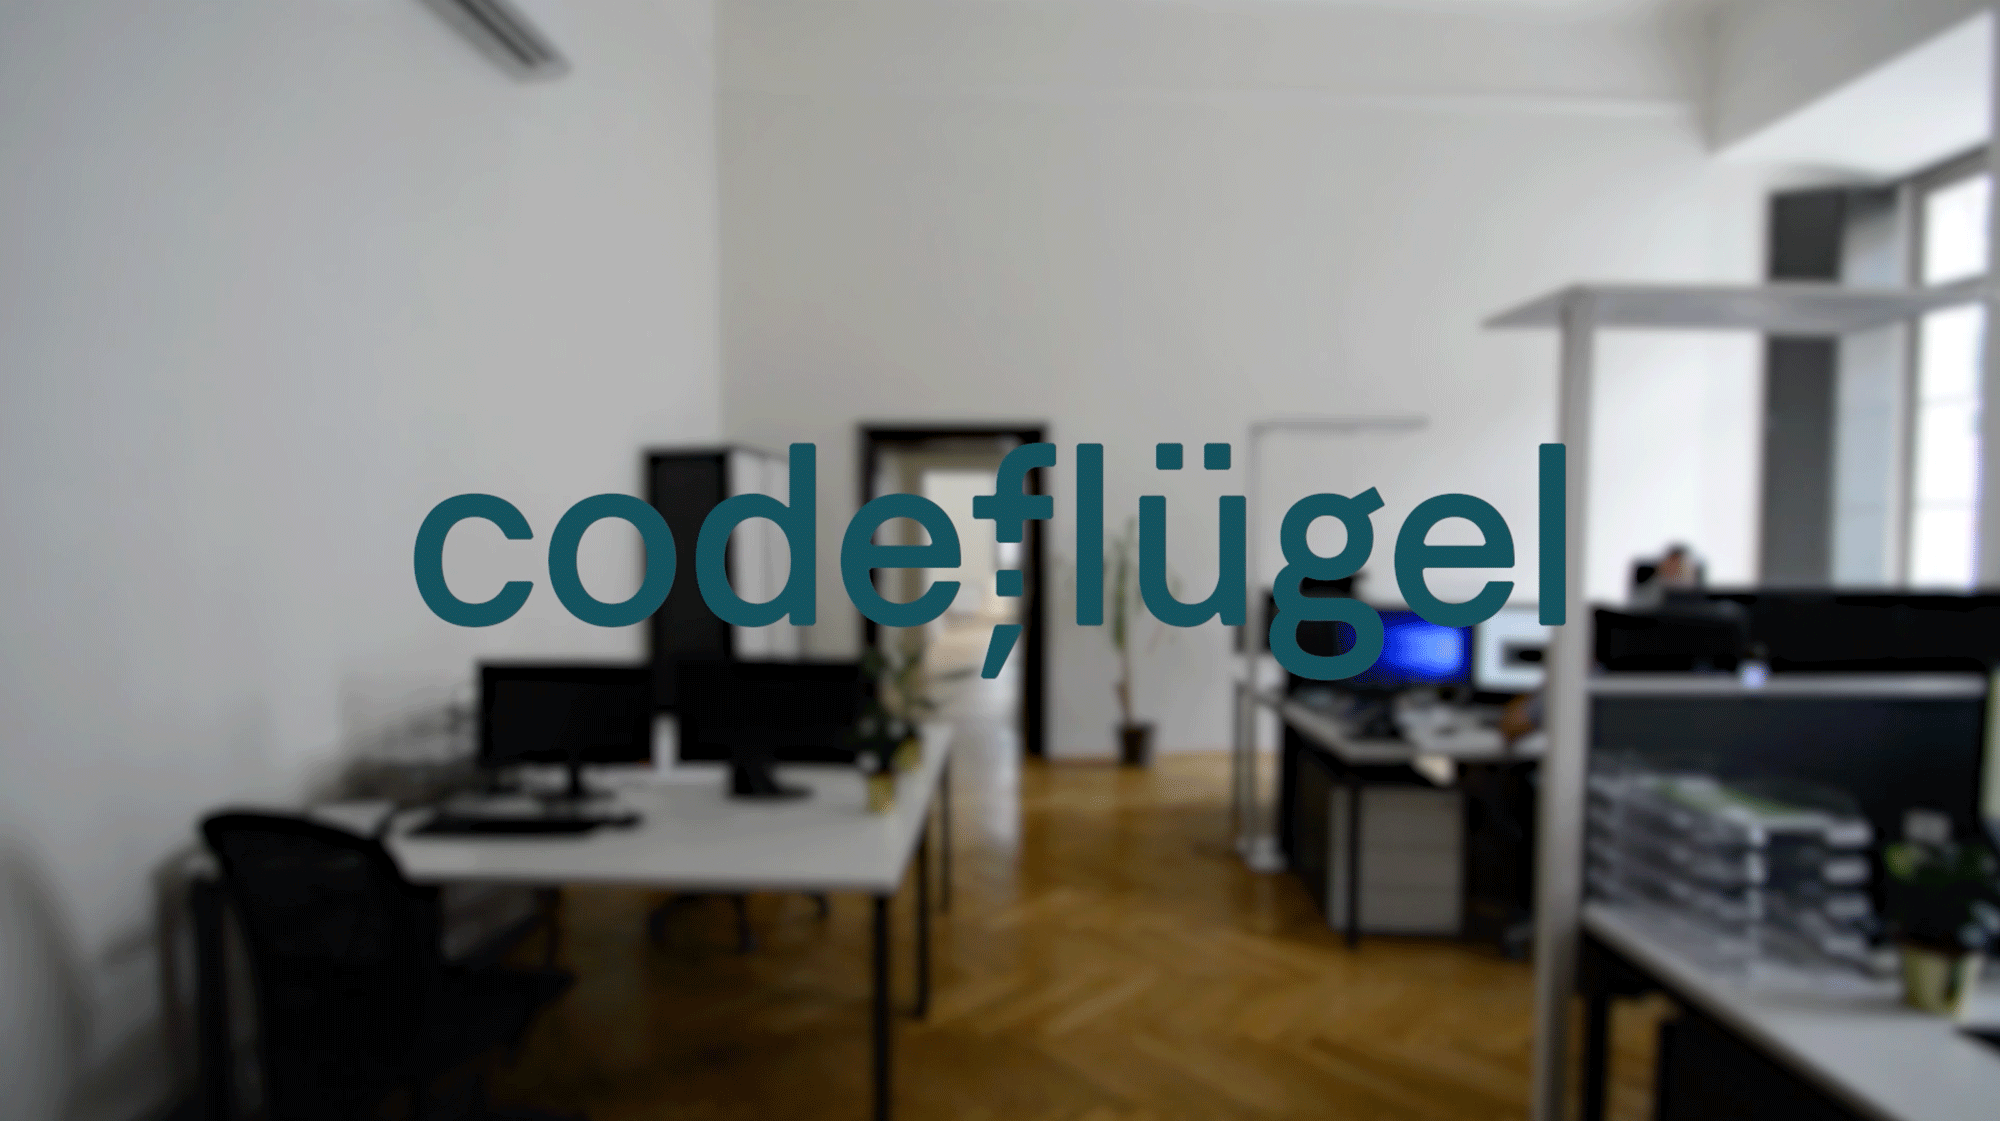 Codeflügel Image Video